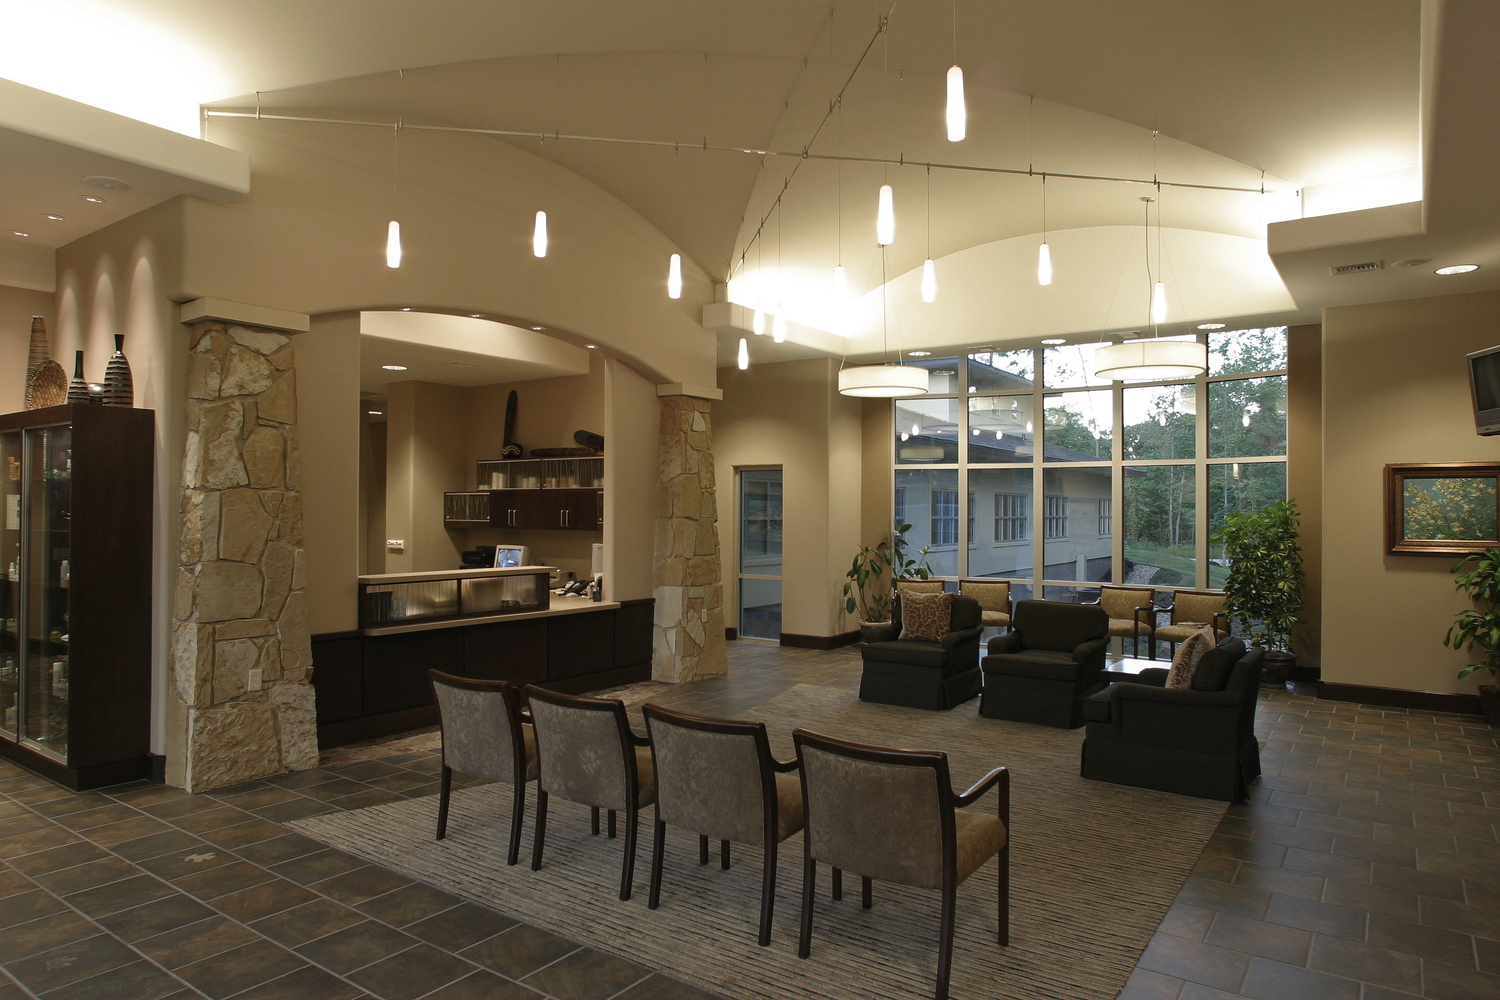 medical office architect east texas - medical facility design build firm tyler texas - tyler based healthcare architect - butler architectural group